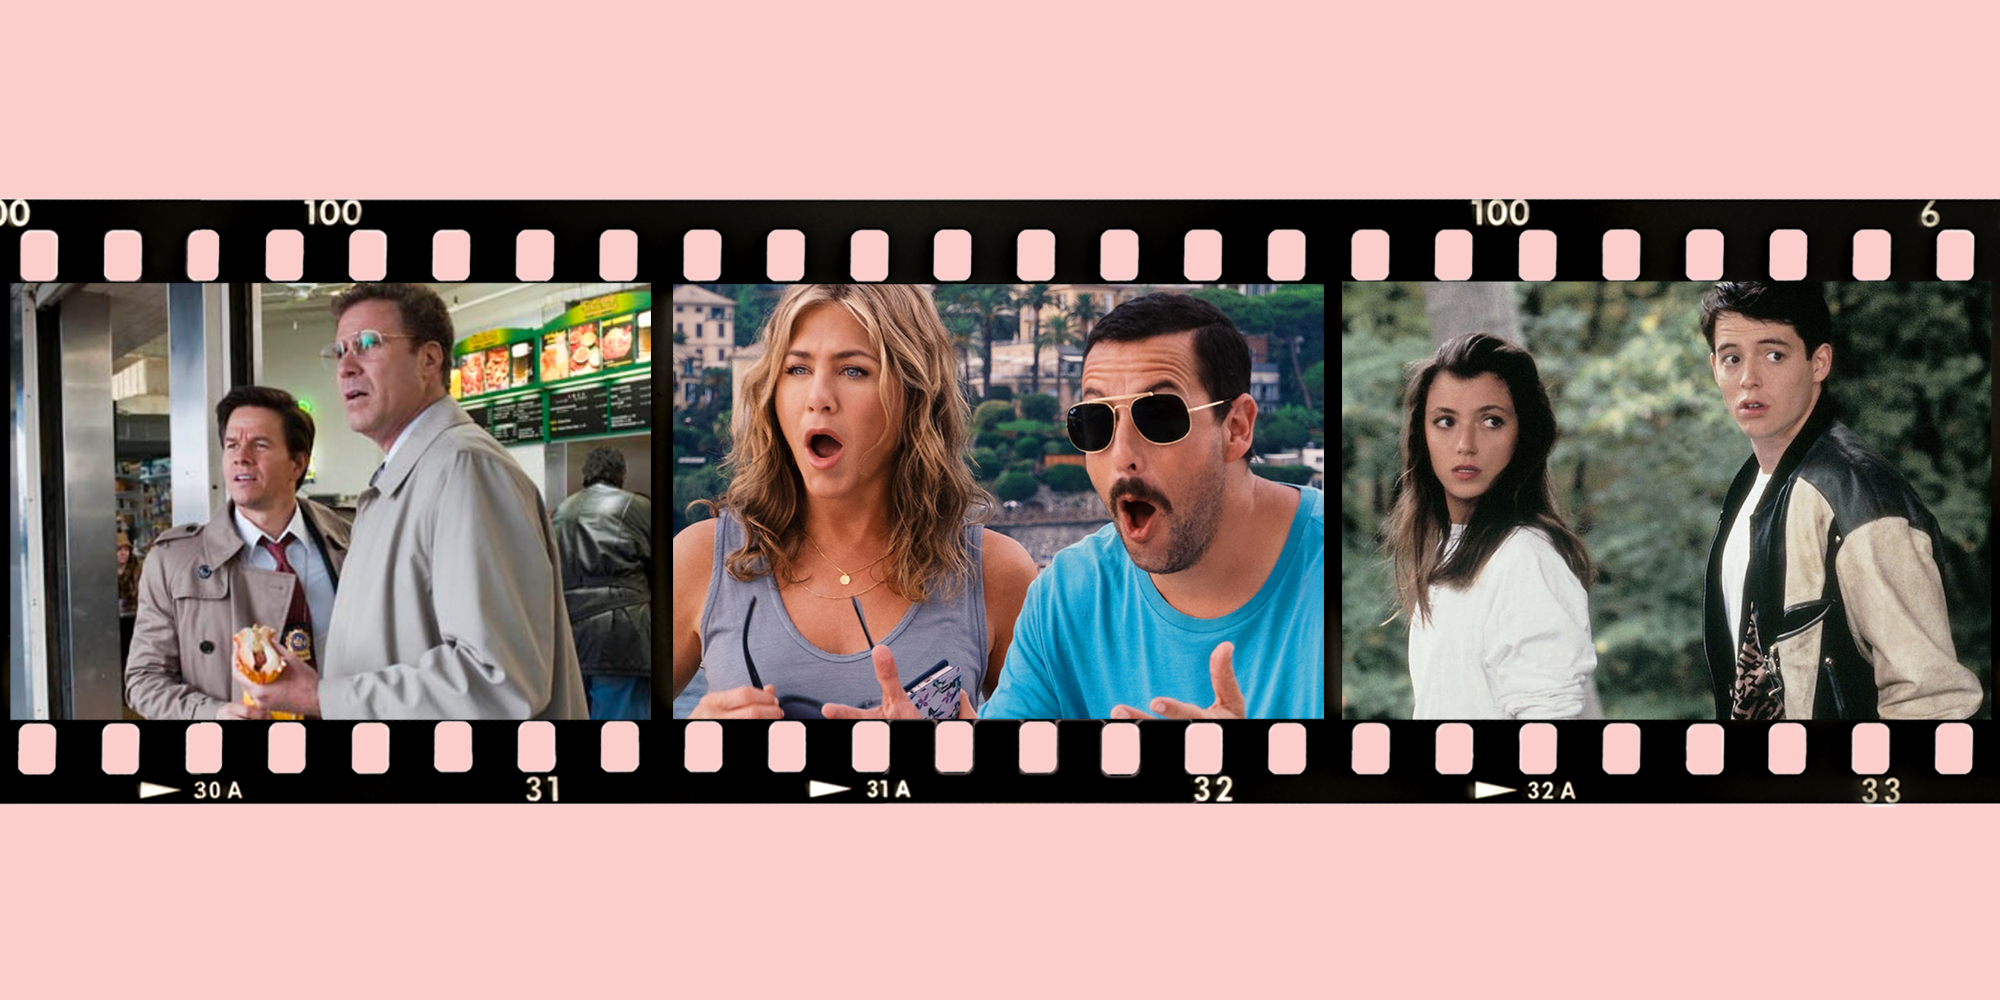 21 Best Comedies on Netflix - Funny Movies on Netflix